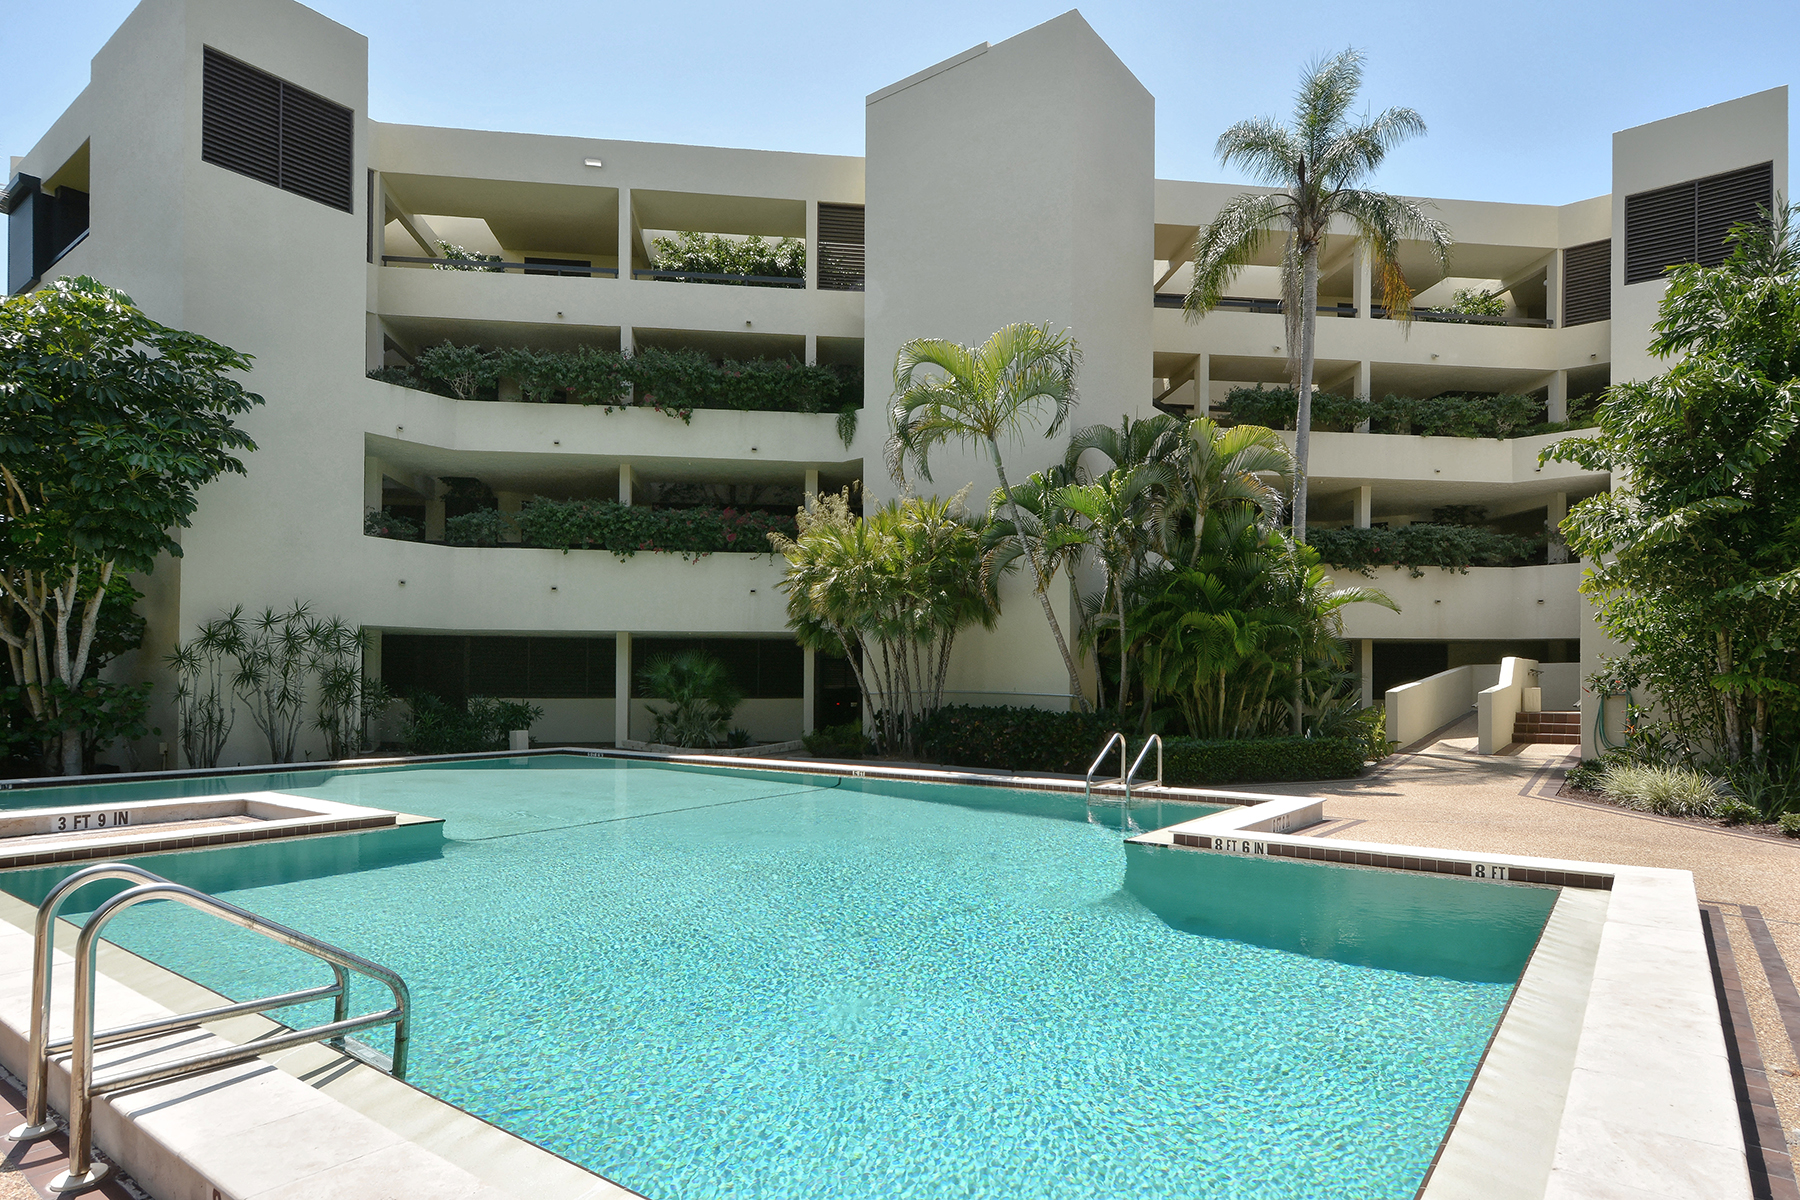 Condominium for Sale at LONGBOAT KEY 5461 Gulf Of Mexico Dr 305 Longboat Key, Florida 34228 United States